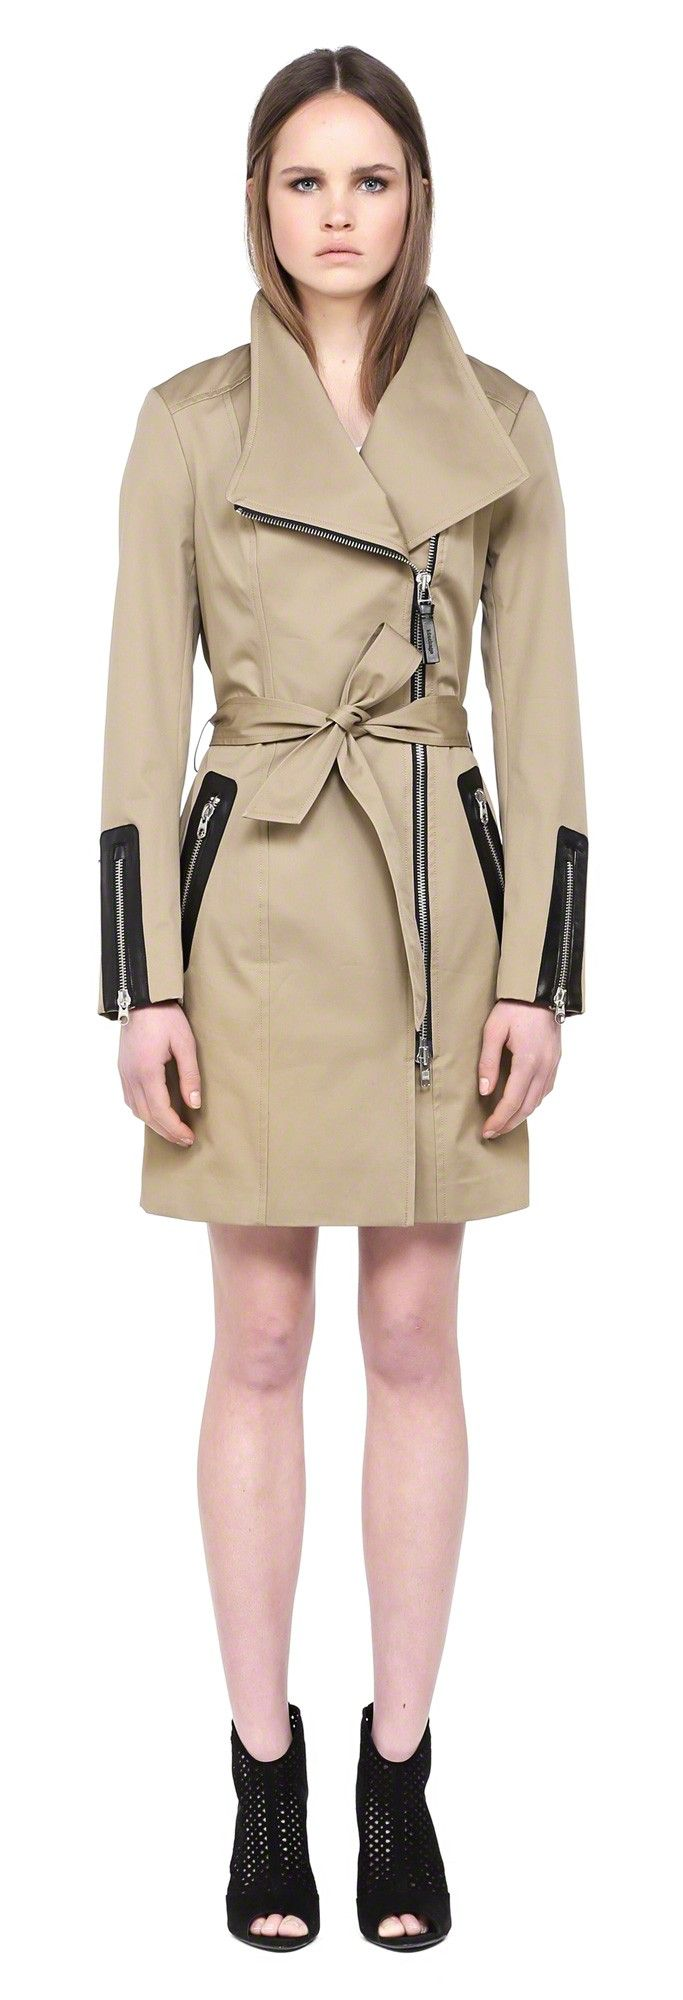 MACKAGE ESTELLE SAND SPRING TRENCH COAT WITH LEATHER TRIM FOR WOMEN #mackage #trenches